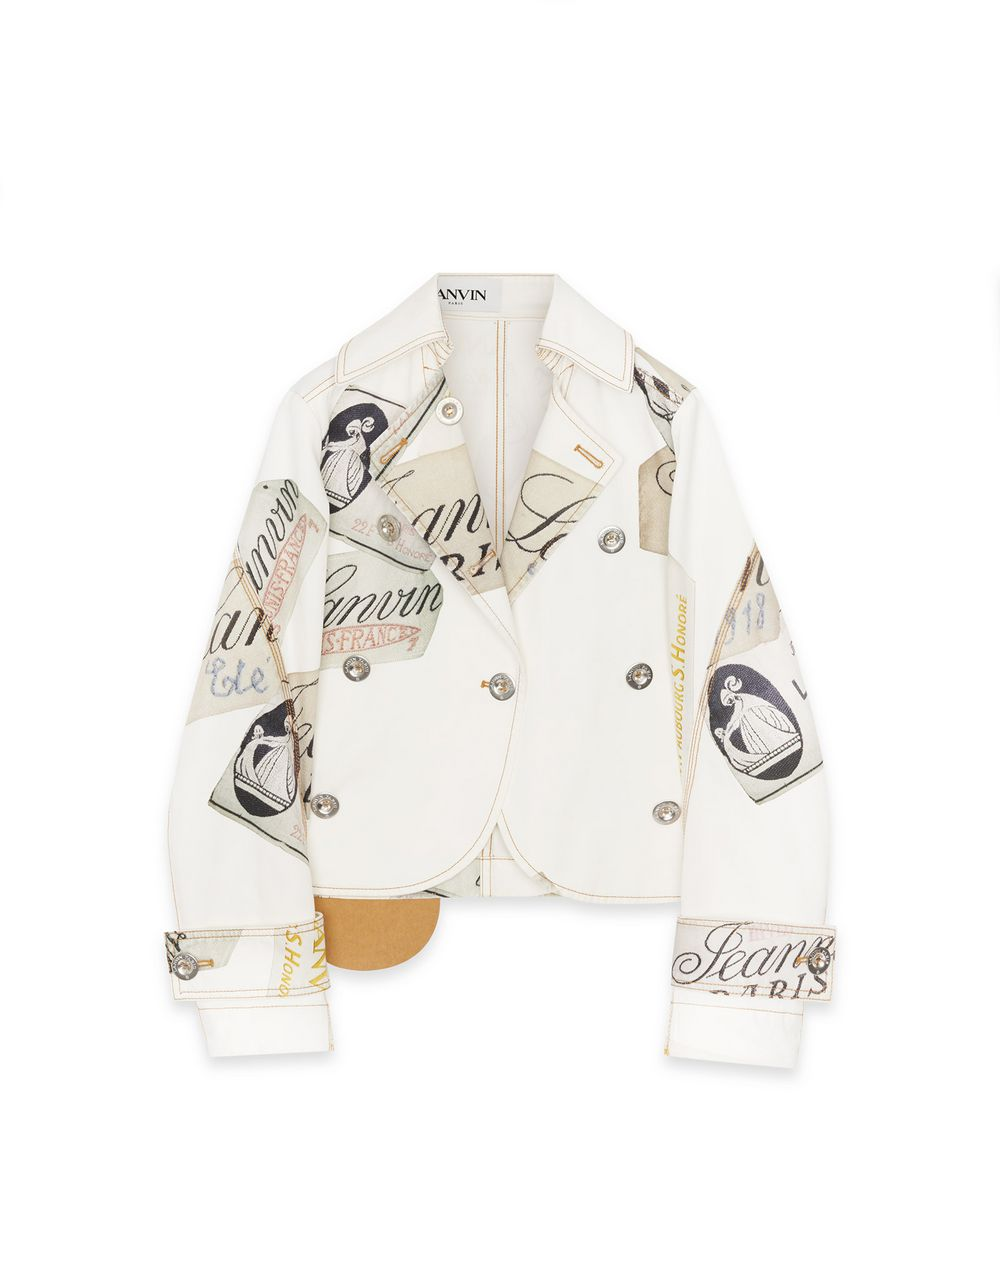 130 YEARS LANVIN LABEL PRINT DENIM JACKET - Lanvin